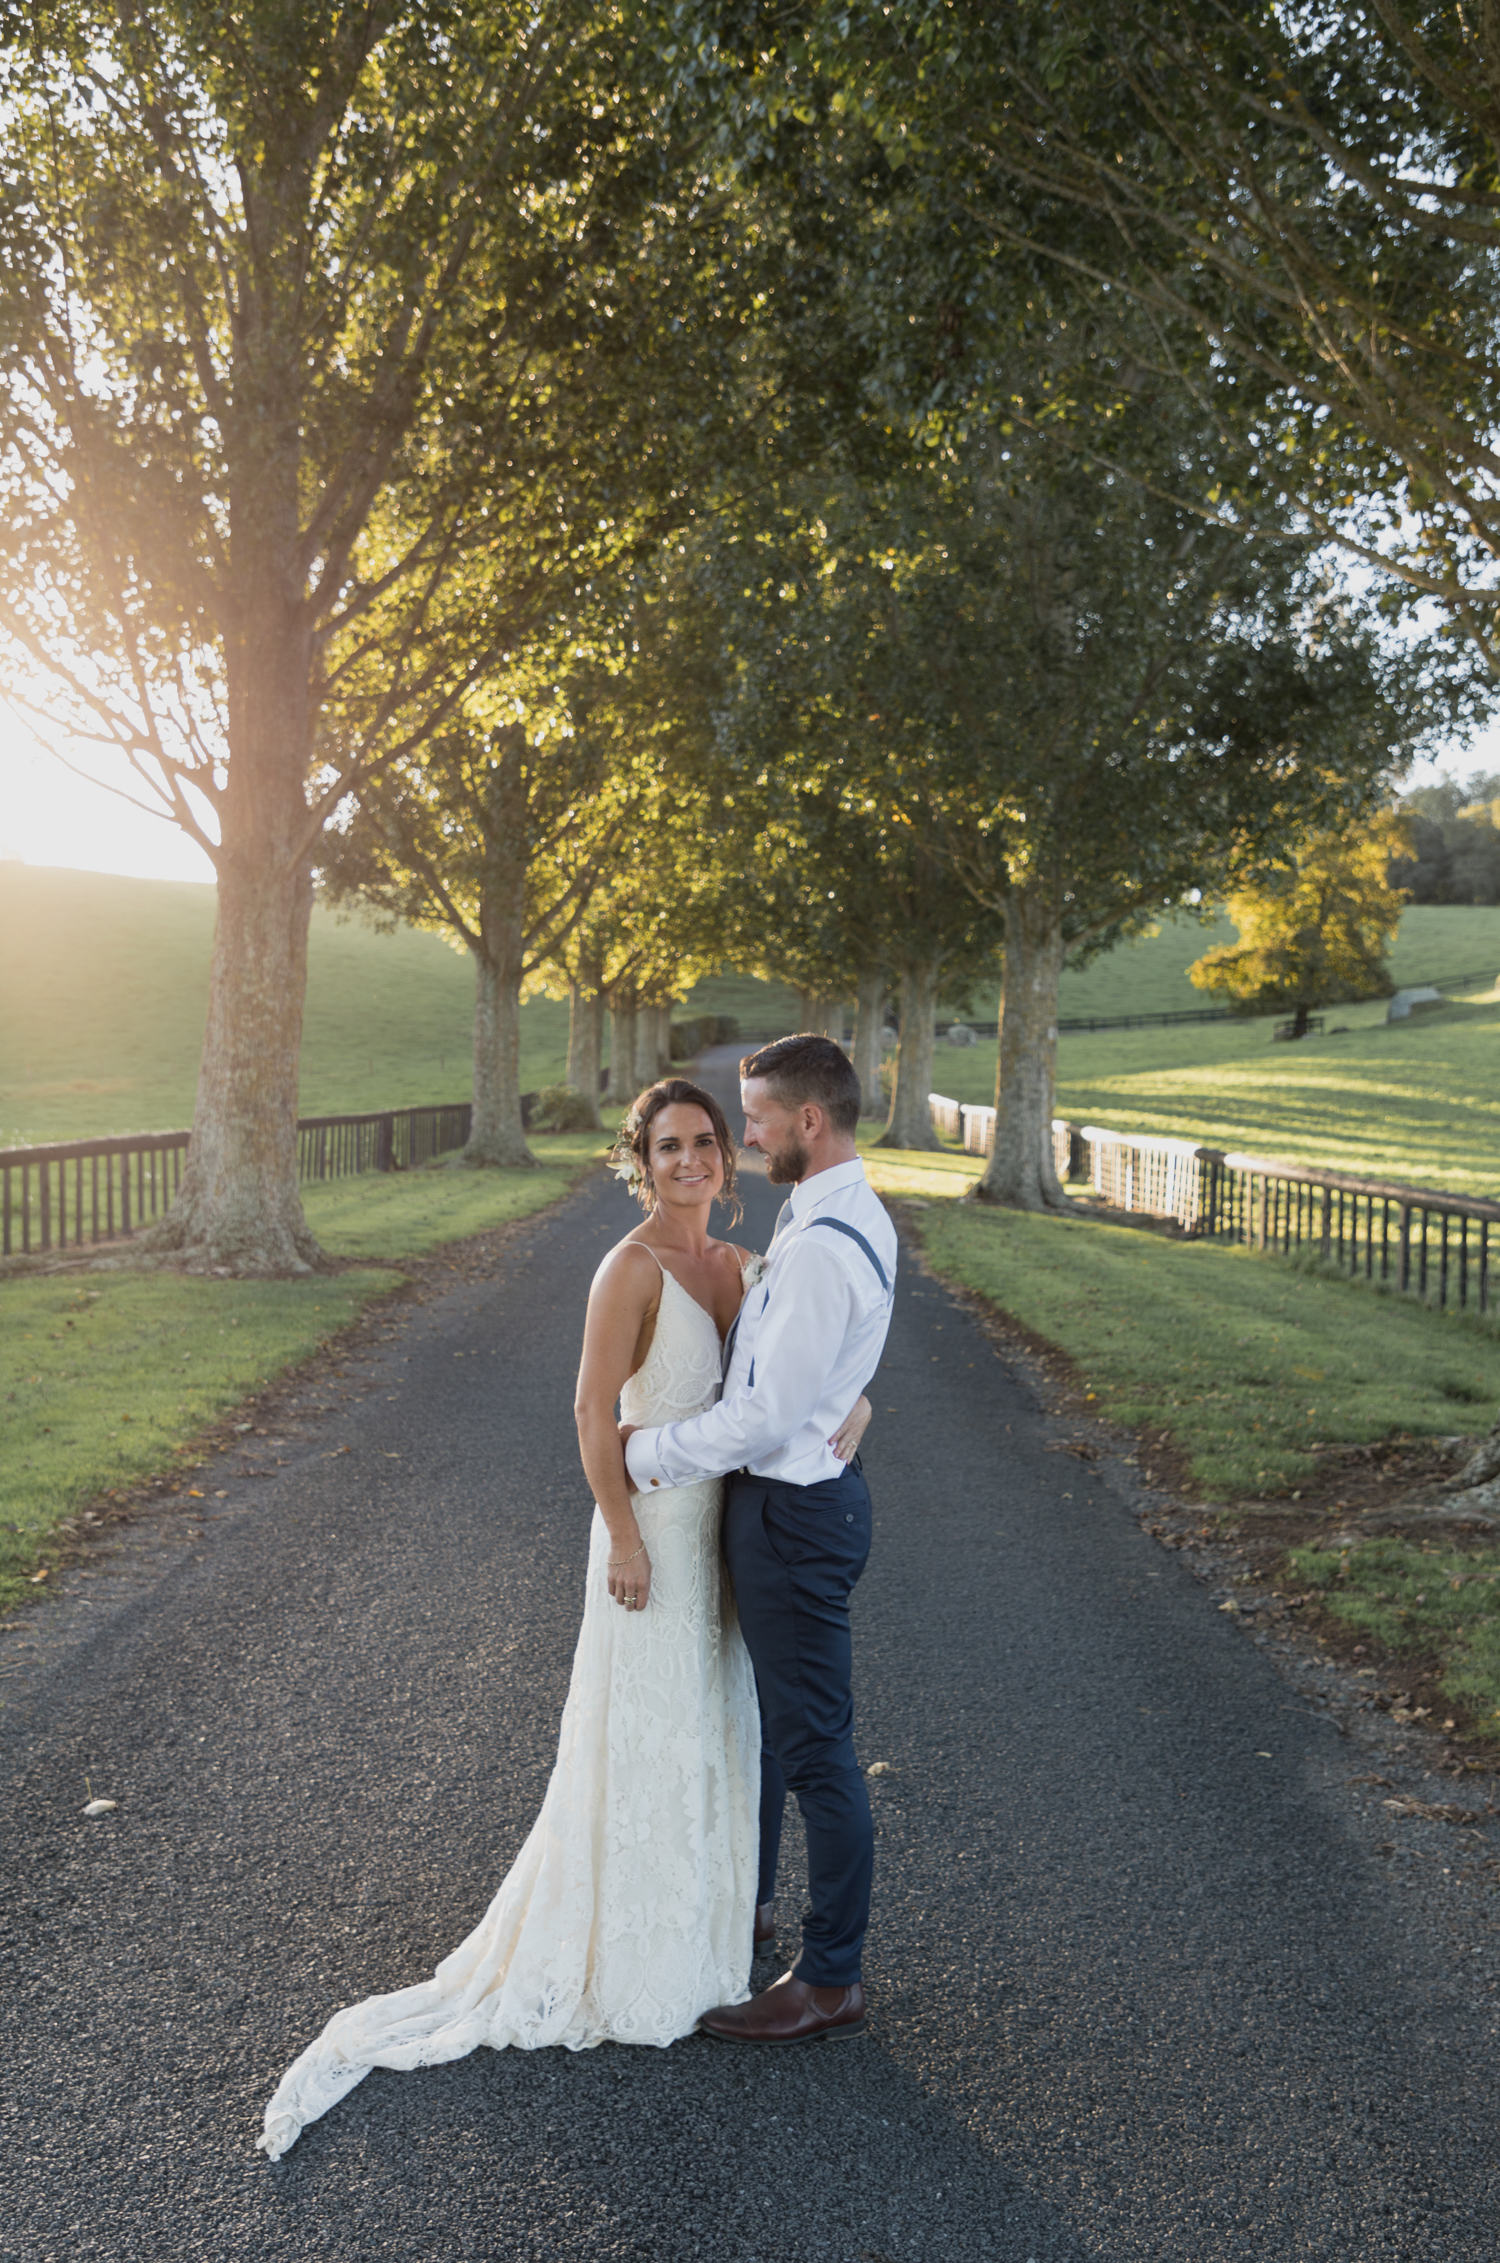 wedding-at-the-red-barn-new-zealand-wedding-photographer-on-tree-lined-driveway-together.jpg